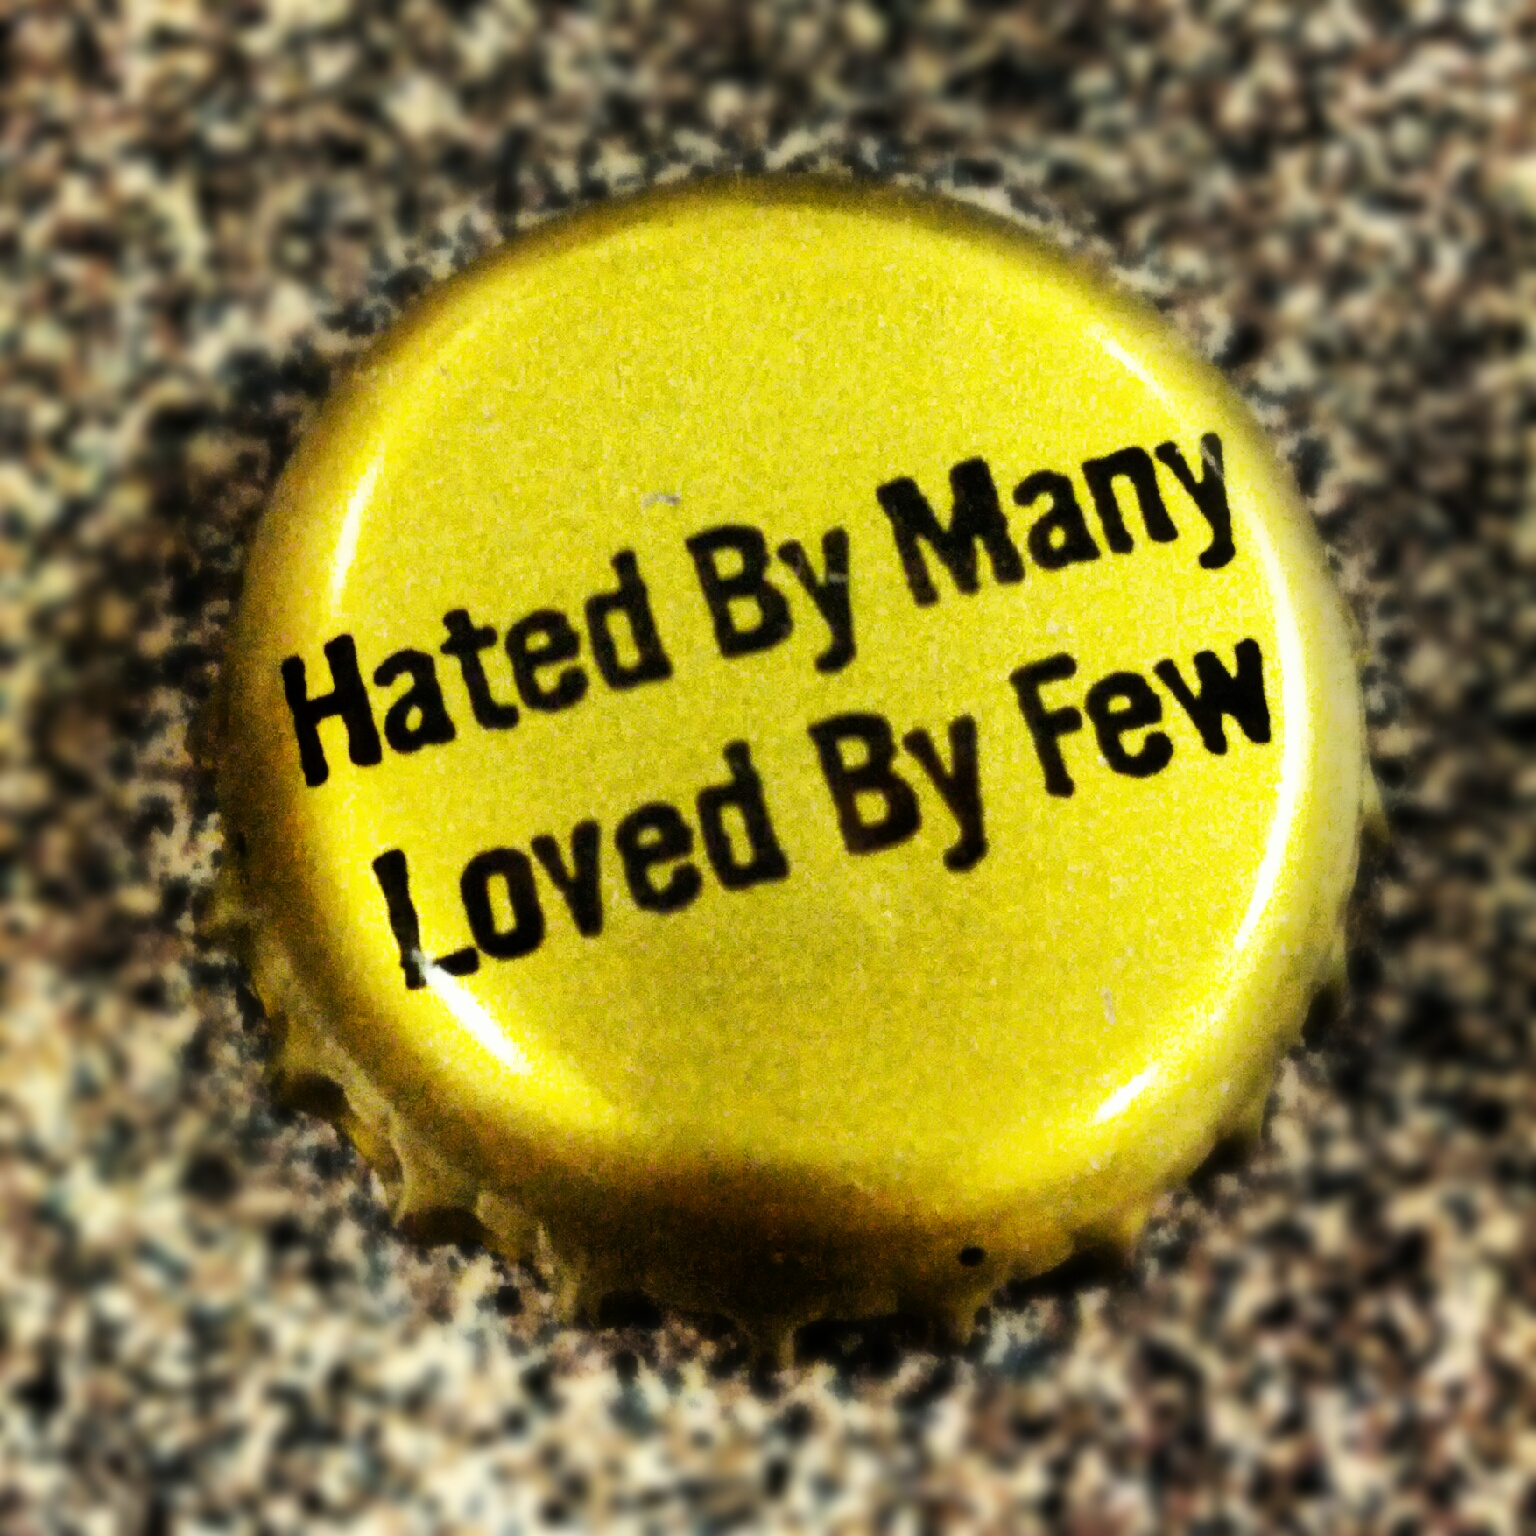 Best Bottle Cap Ever Stones Hated By Many Loved By Few Cap